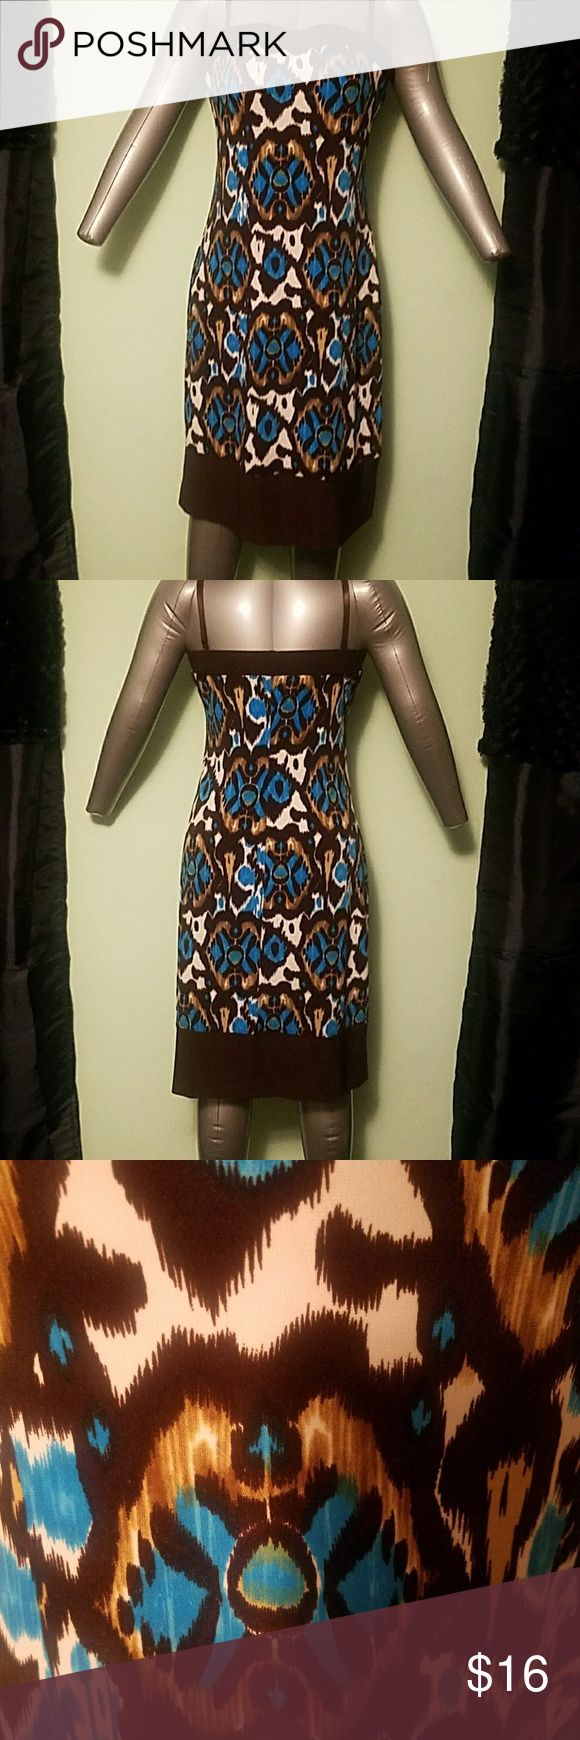 Strapless Brown, Blue, and White Dress Pretty printed dress. It can be worn with or without the straps! Only worn a couple times, very good condition! B. SMART Dresses Strapless